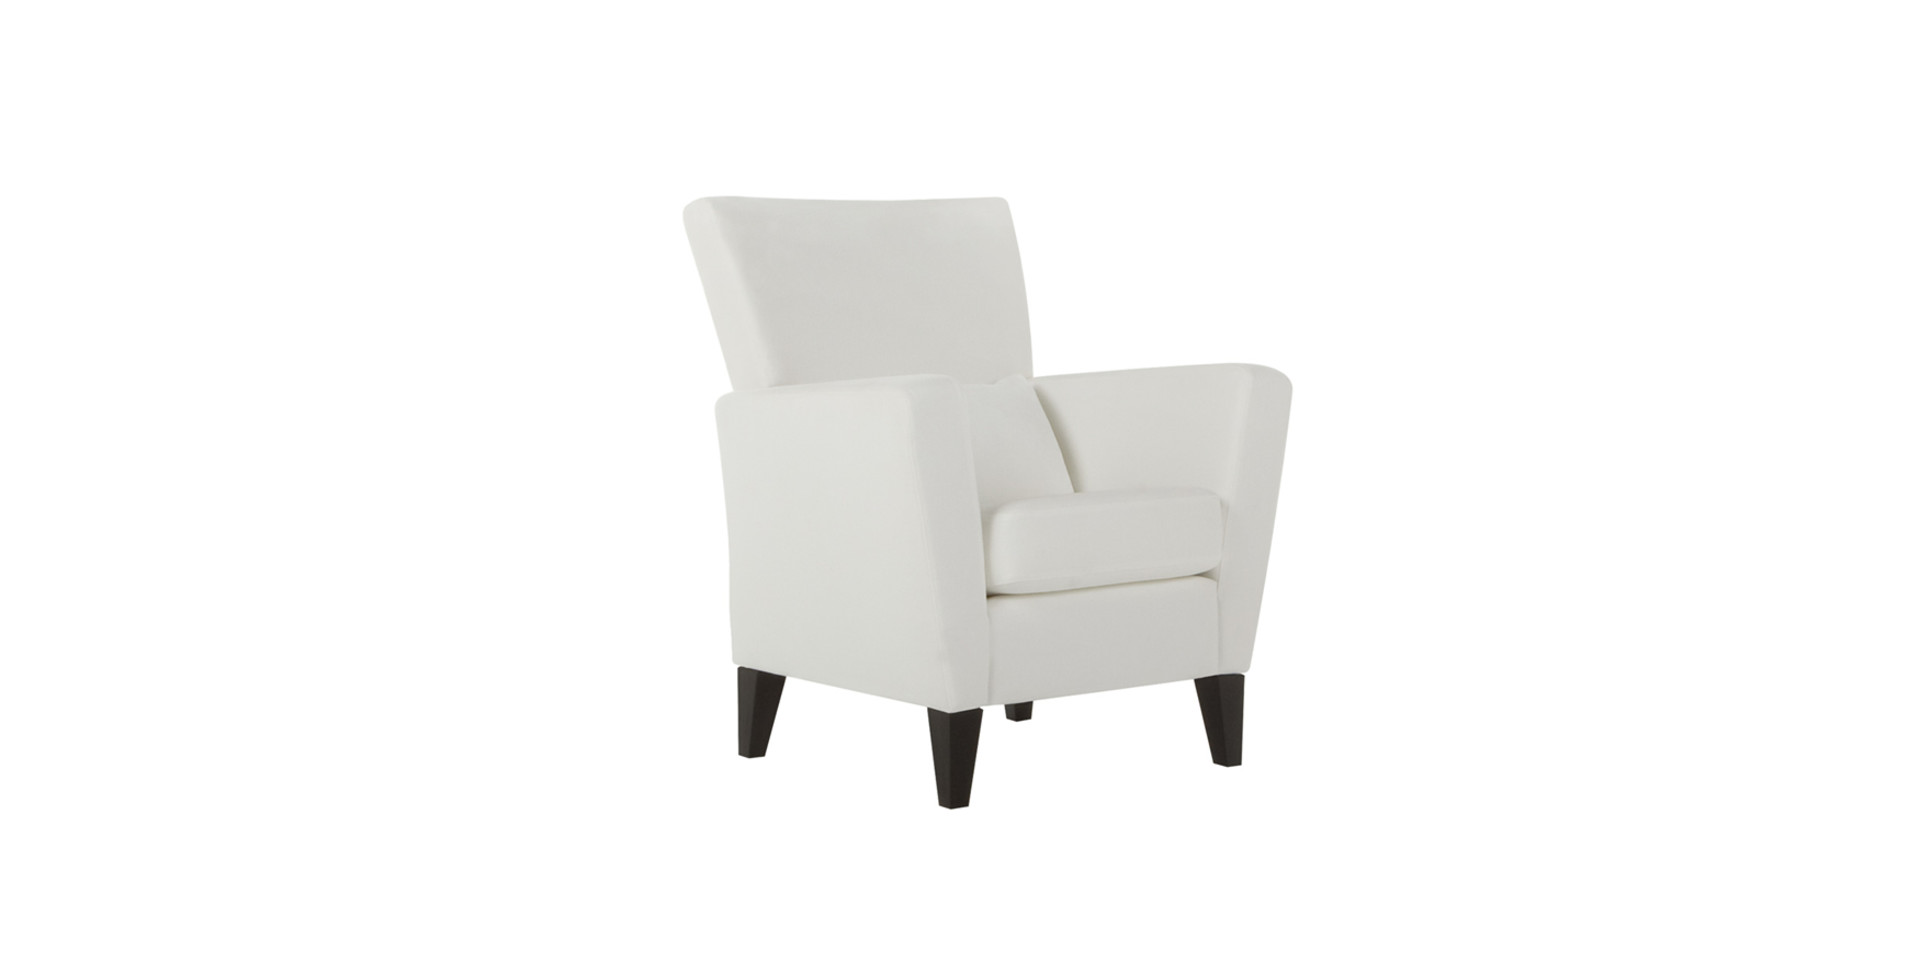 sits-denver-fauteuil-armchair_caleido1420_white_1